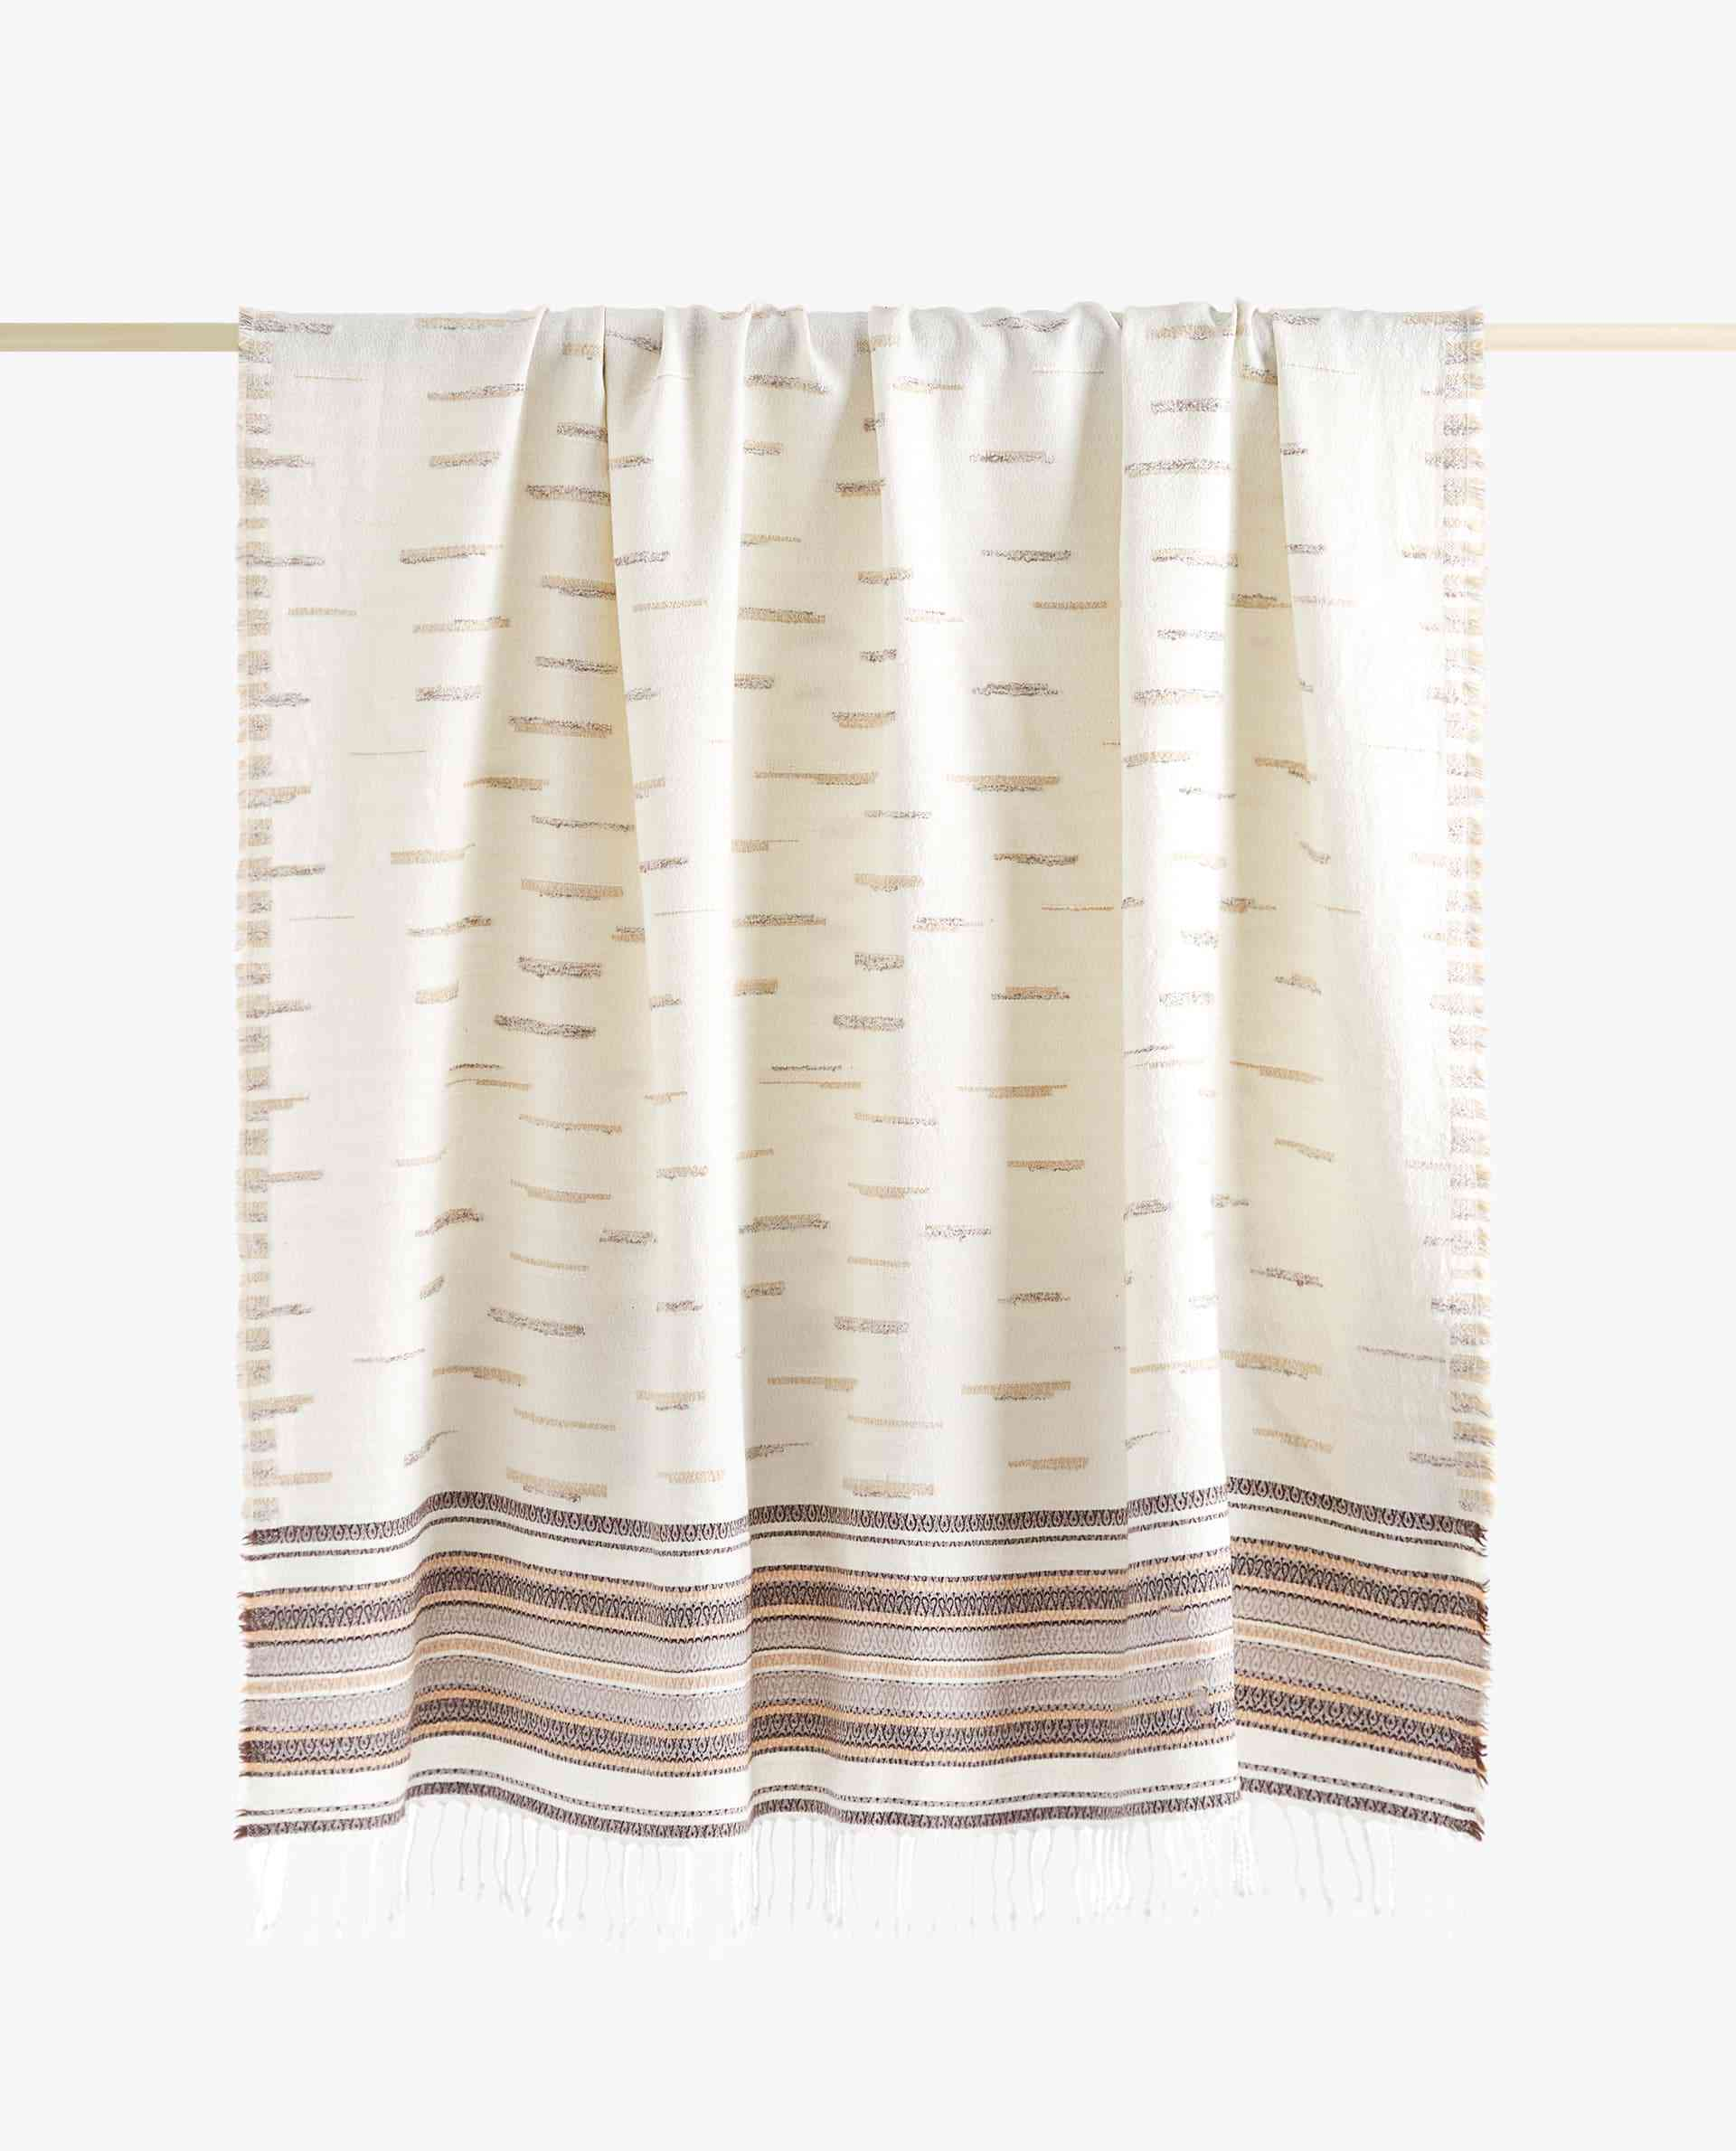 Jacquard Blanket with Embroidered Lines